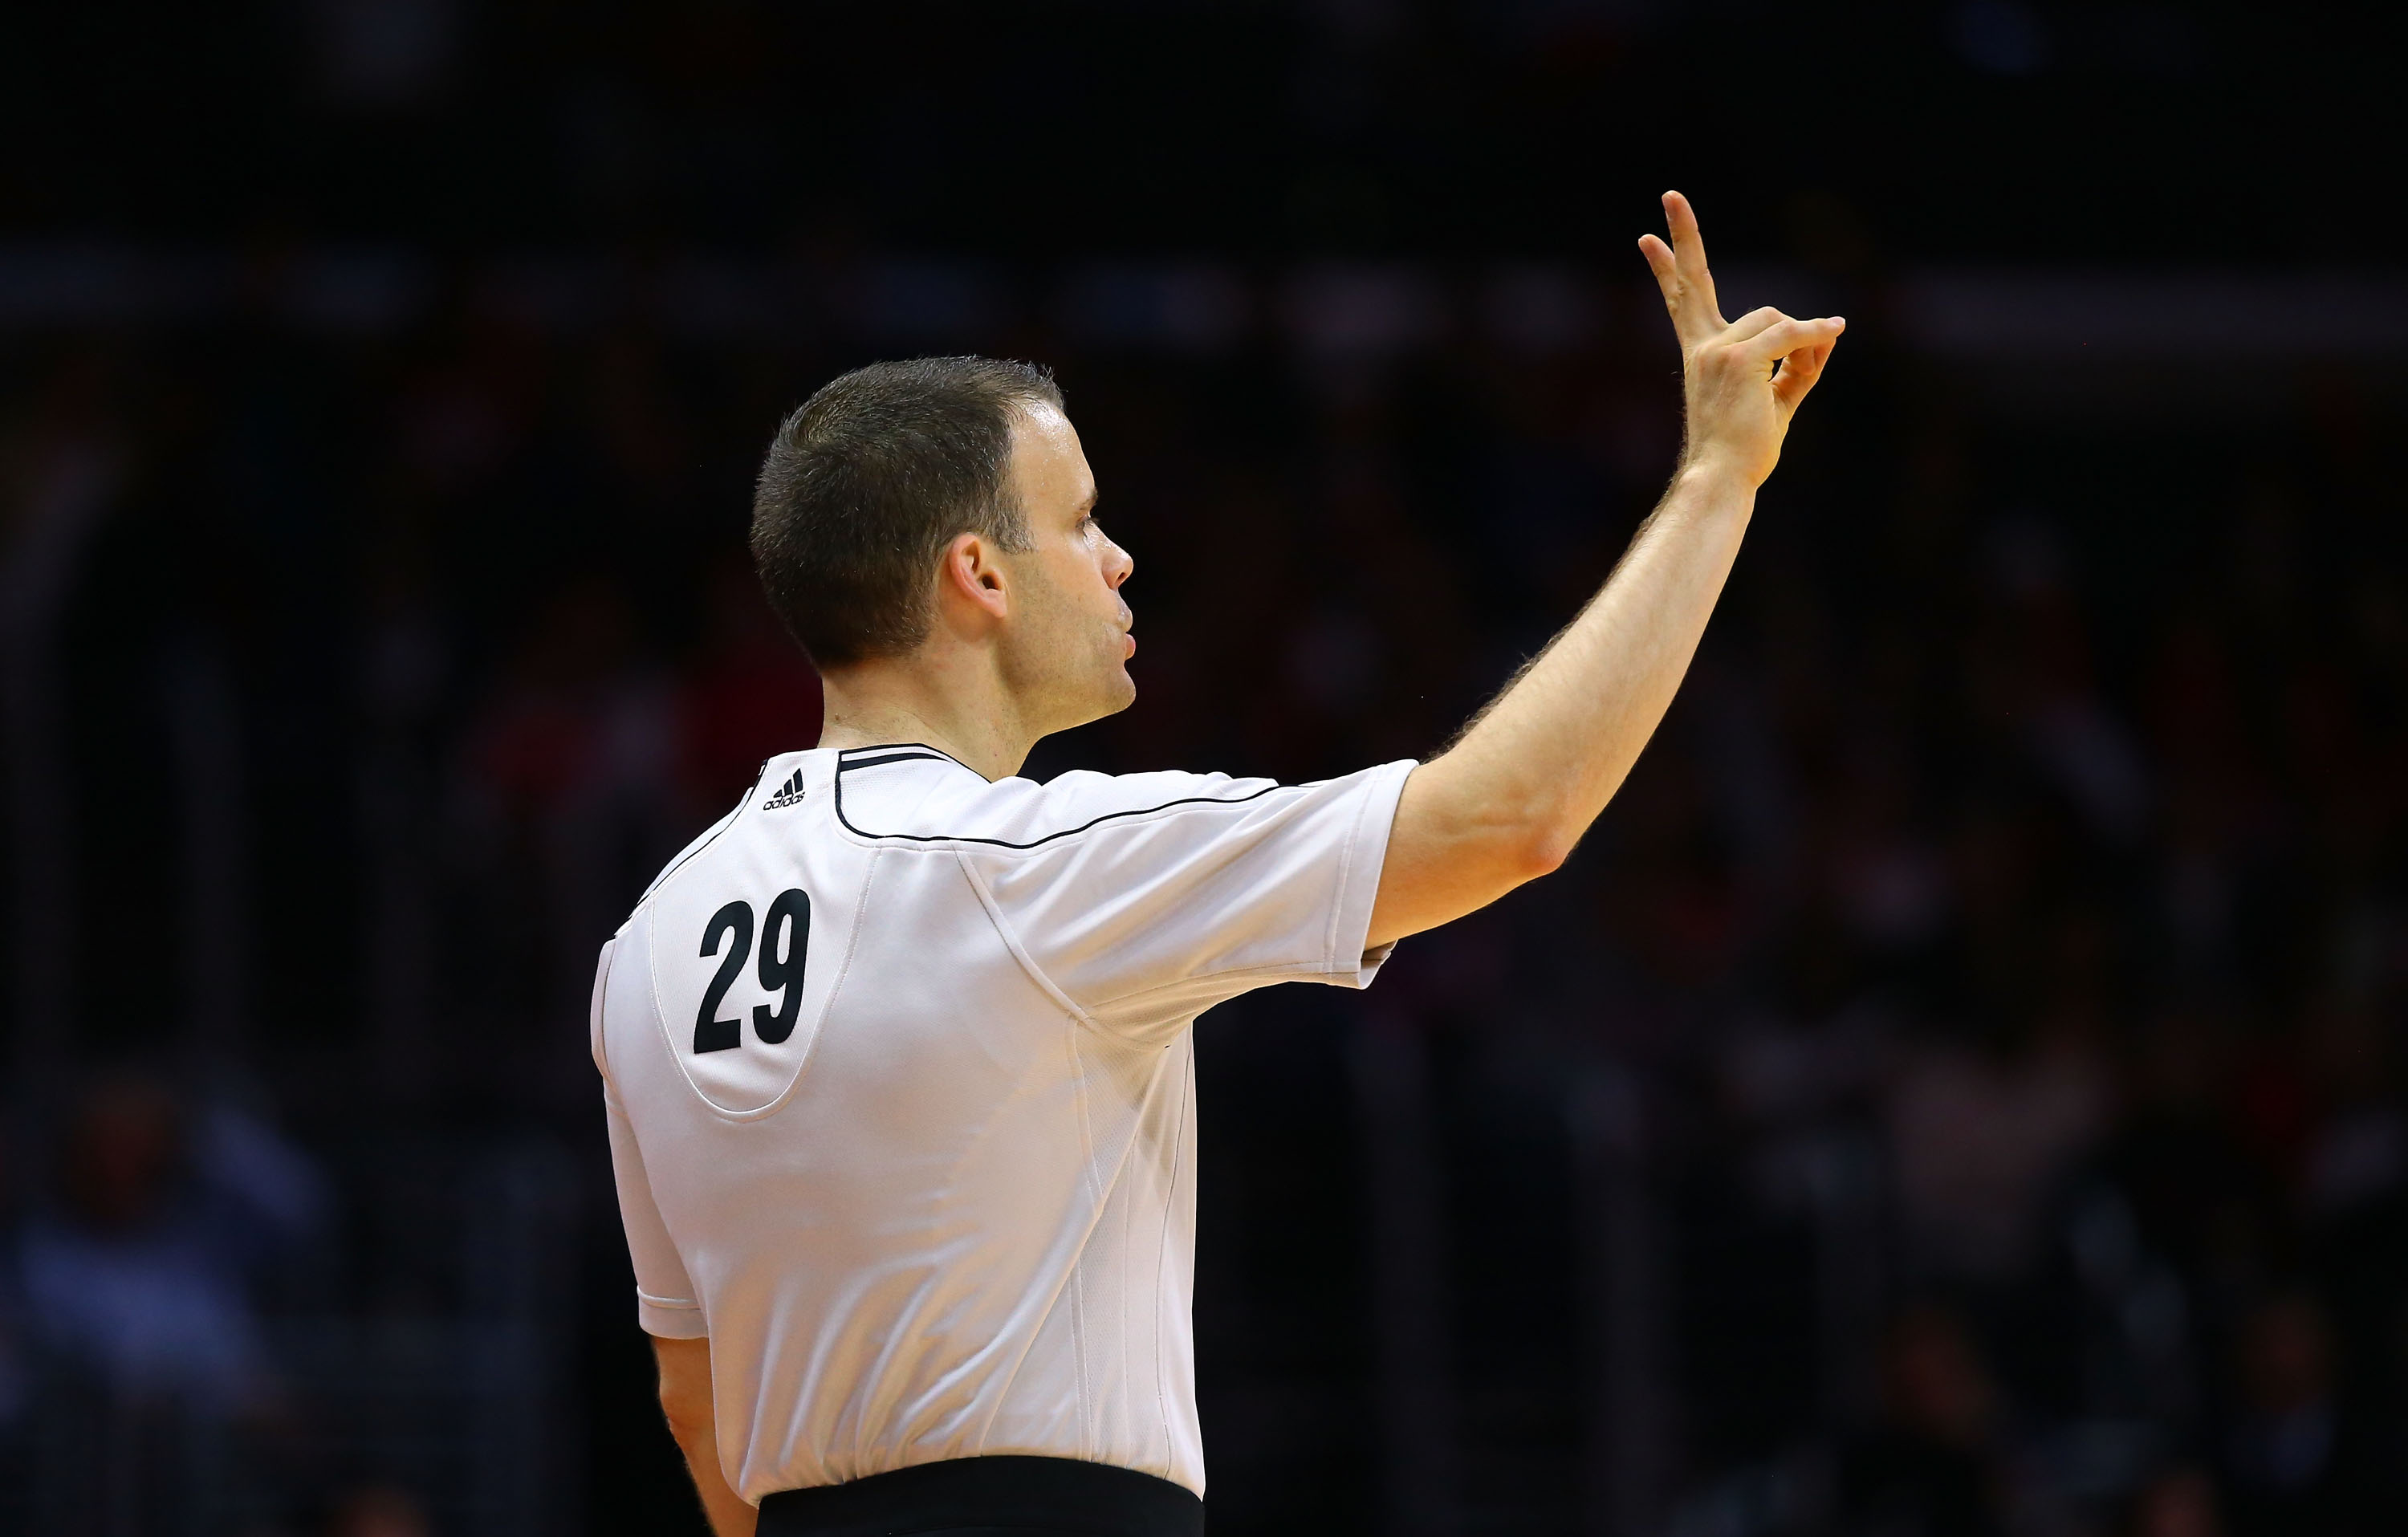 NBA referee Mark Lindsay #29 officiates the NBA game between the Los Angeles Clippers and the Phoenix Suns at Staples Center on Dec. 8, 2014 in Los Angeles.